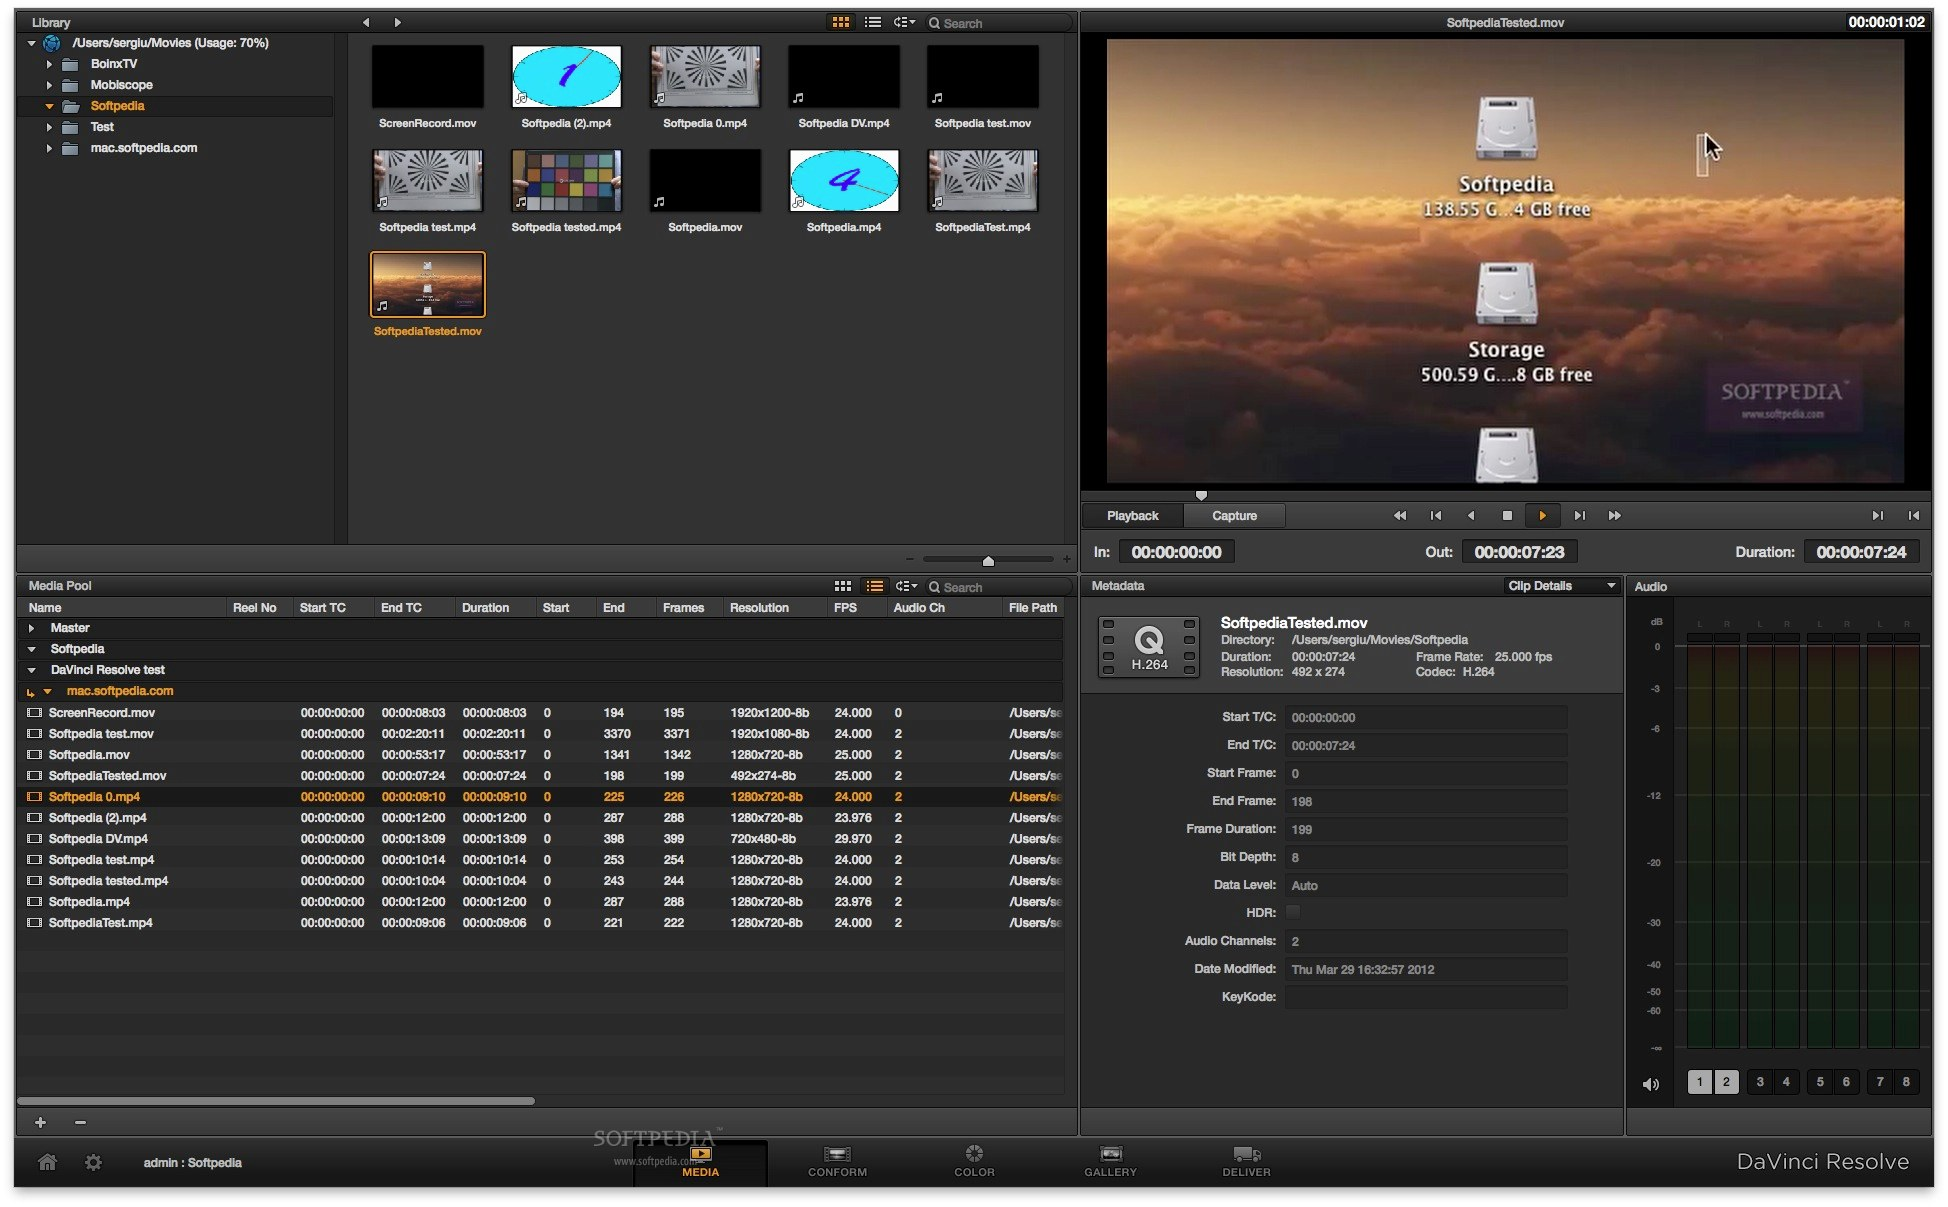 davinci resolve 12.5 download crack